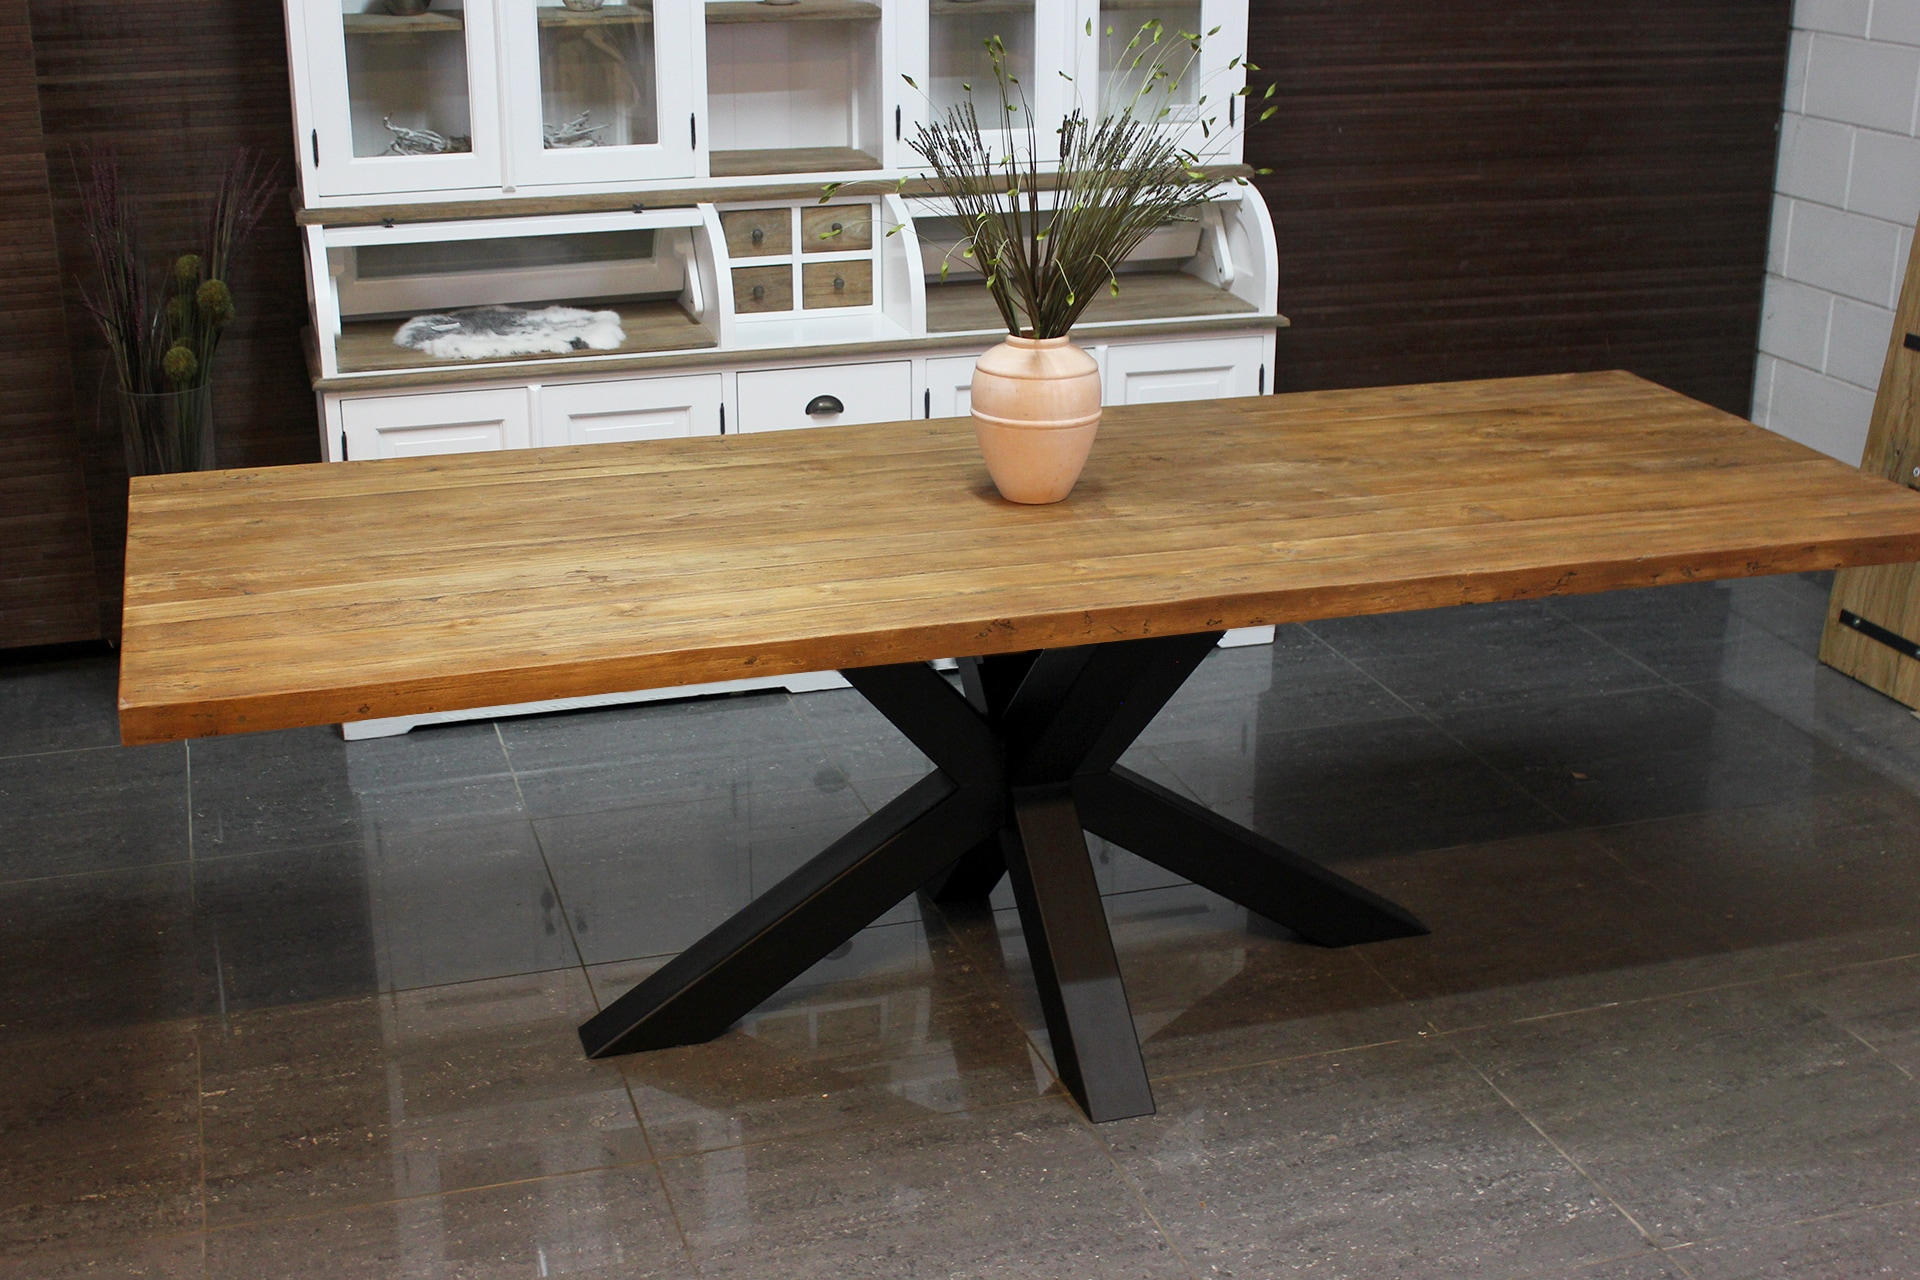 Teak Besi T260LSL Old | teak design dining table with industrial leg. Beautiful thick top in old teak. Exclusive dining tables at TEAK2.